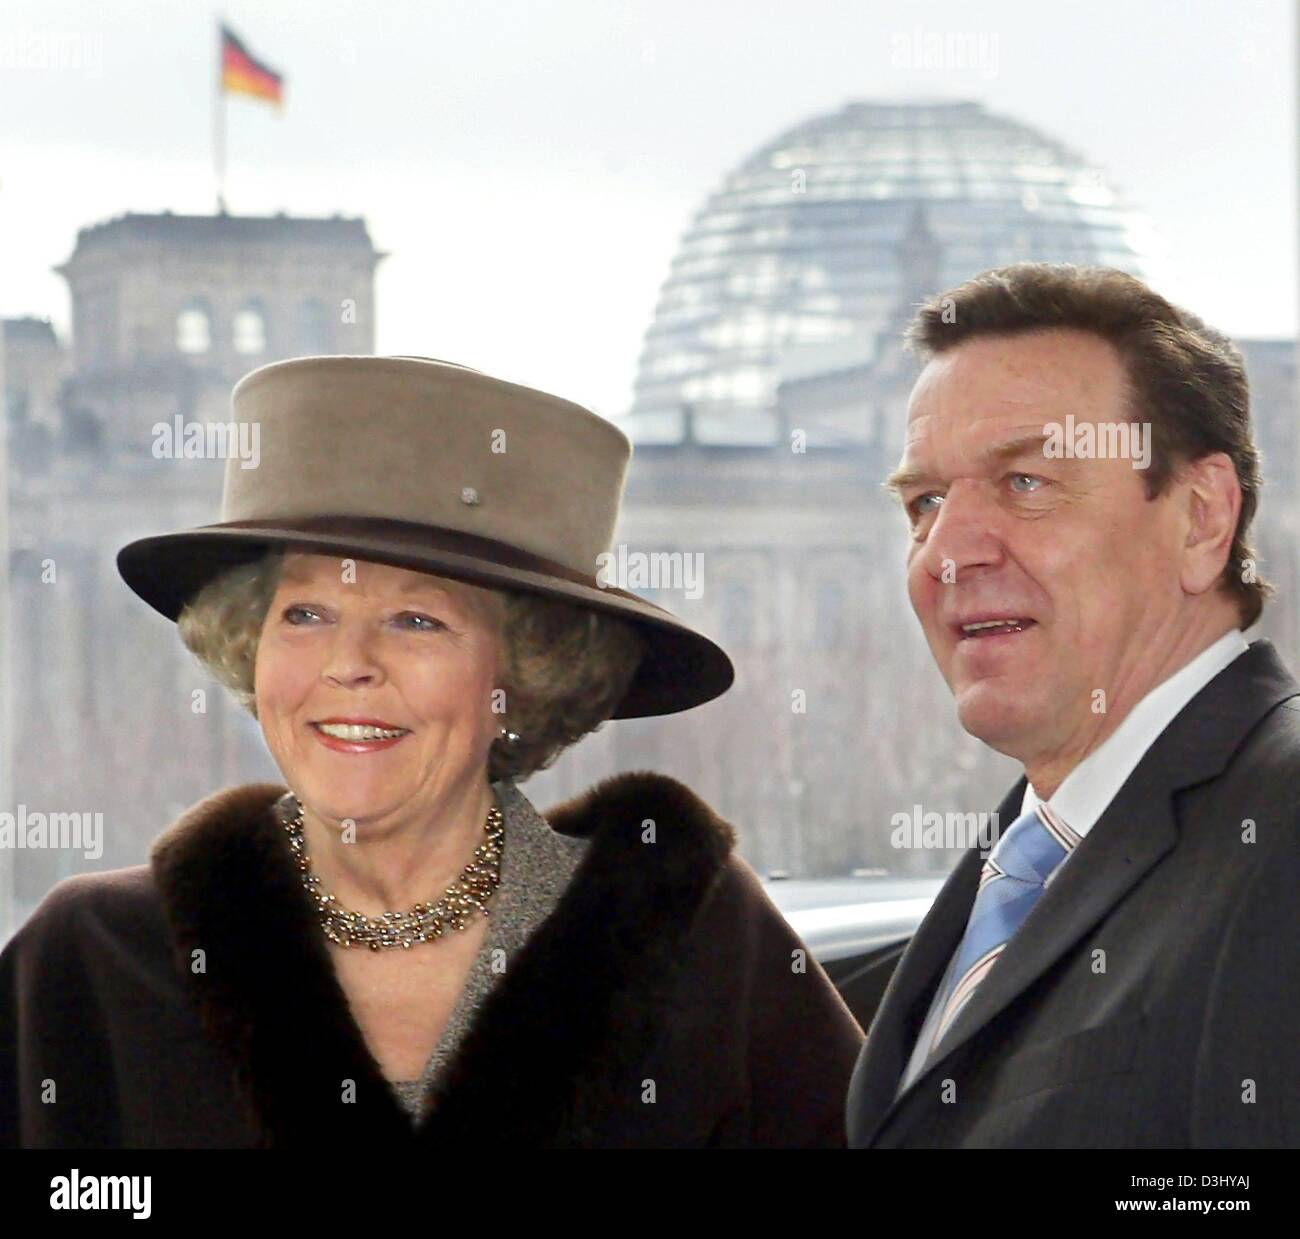 Image result for gerhard schroeder scheming